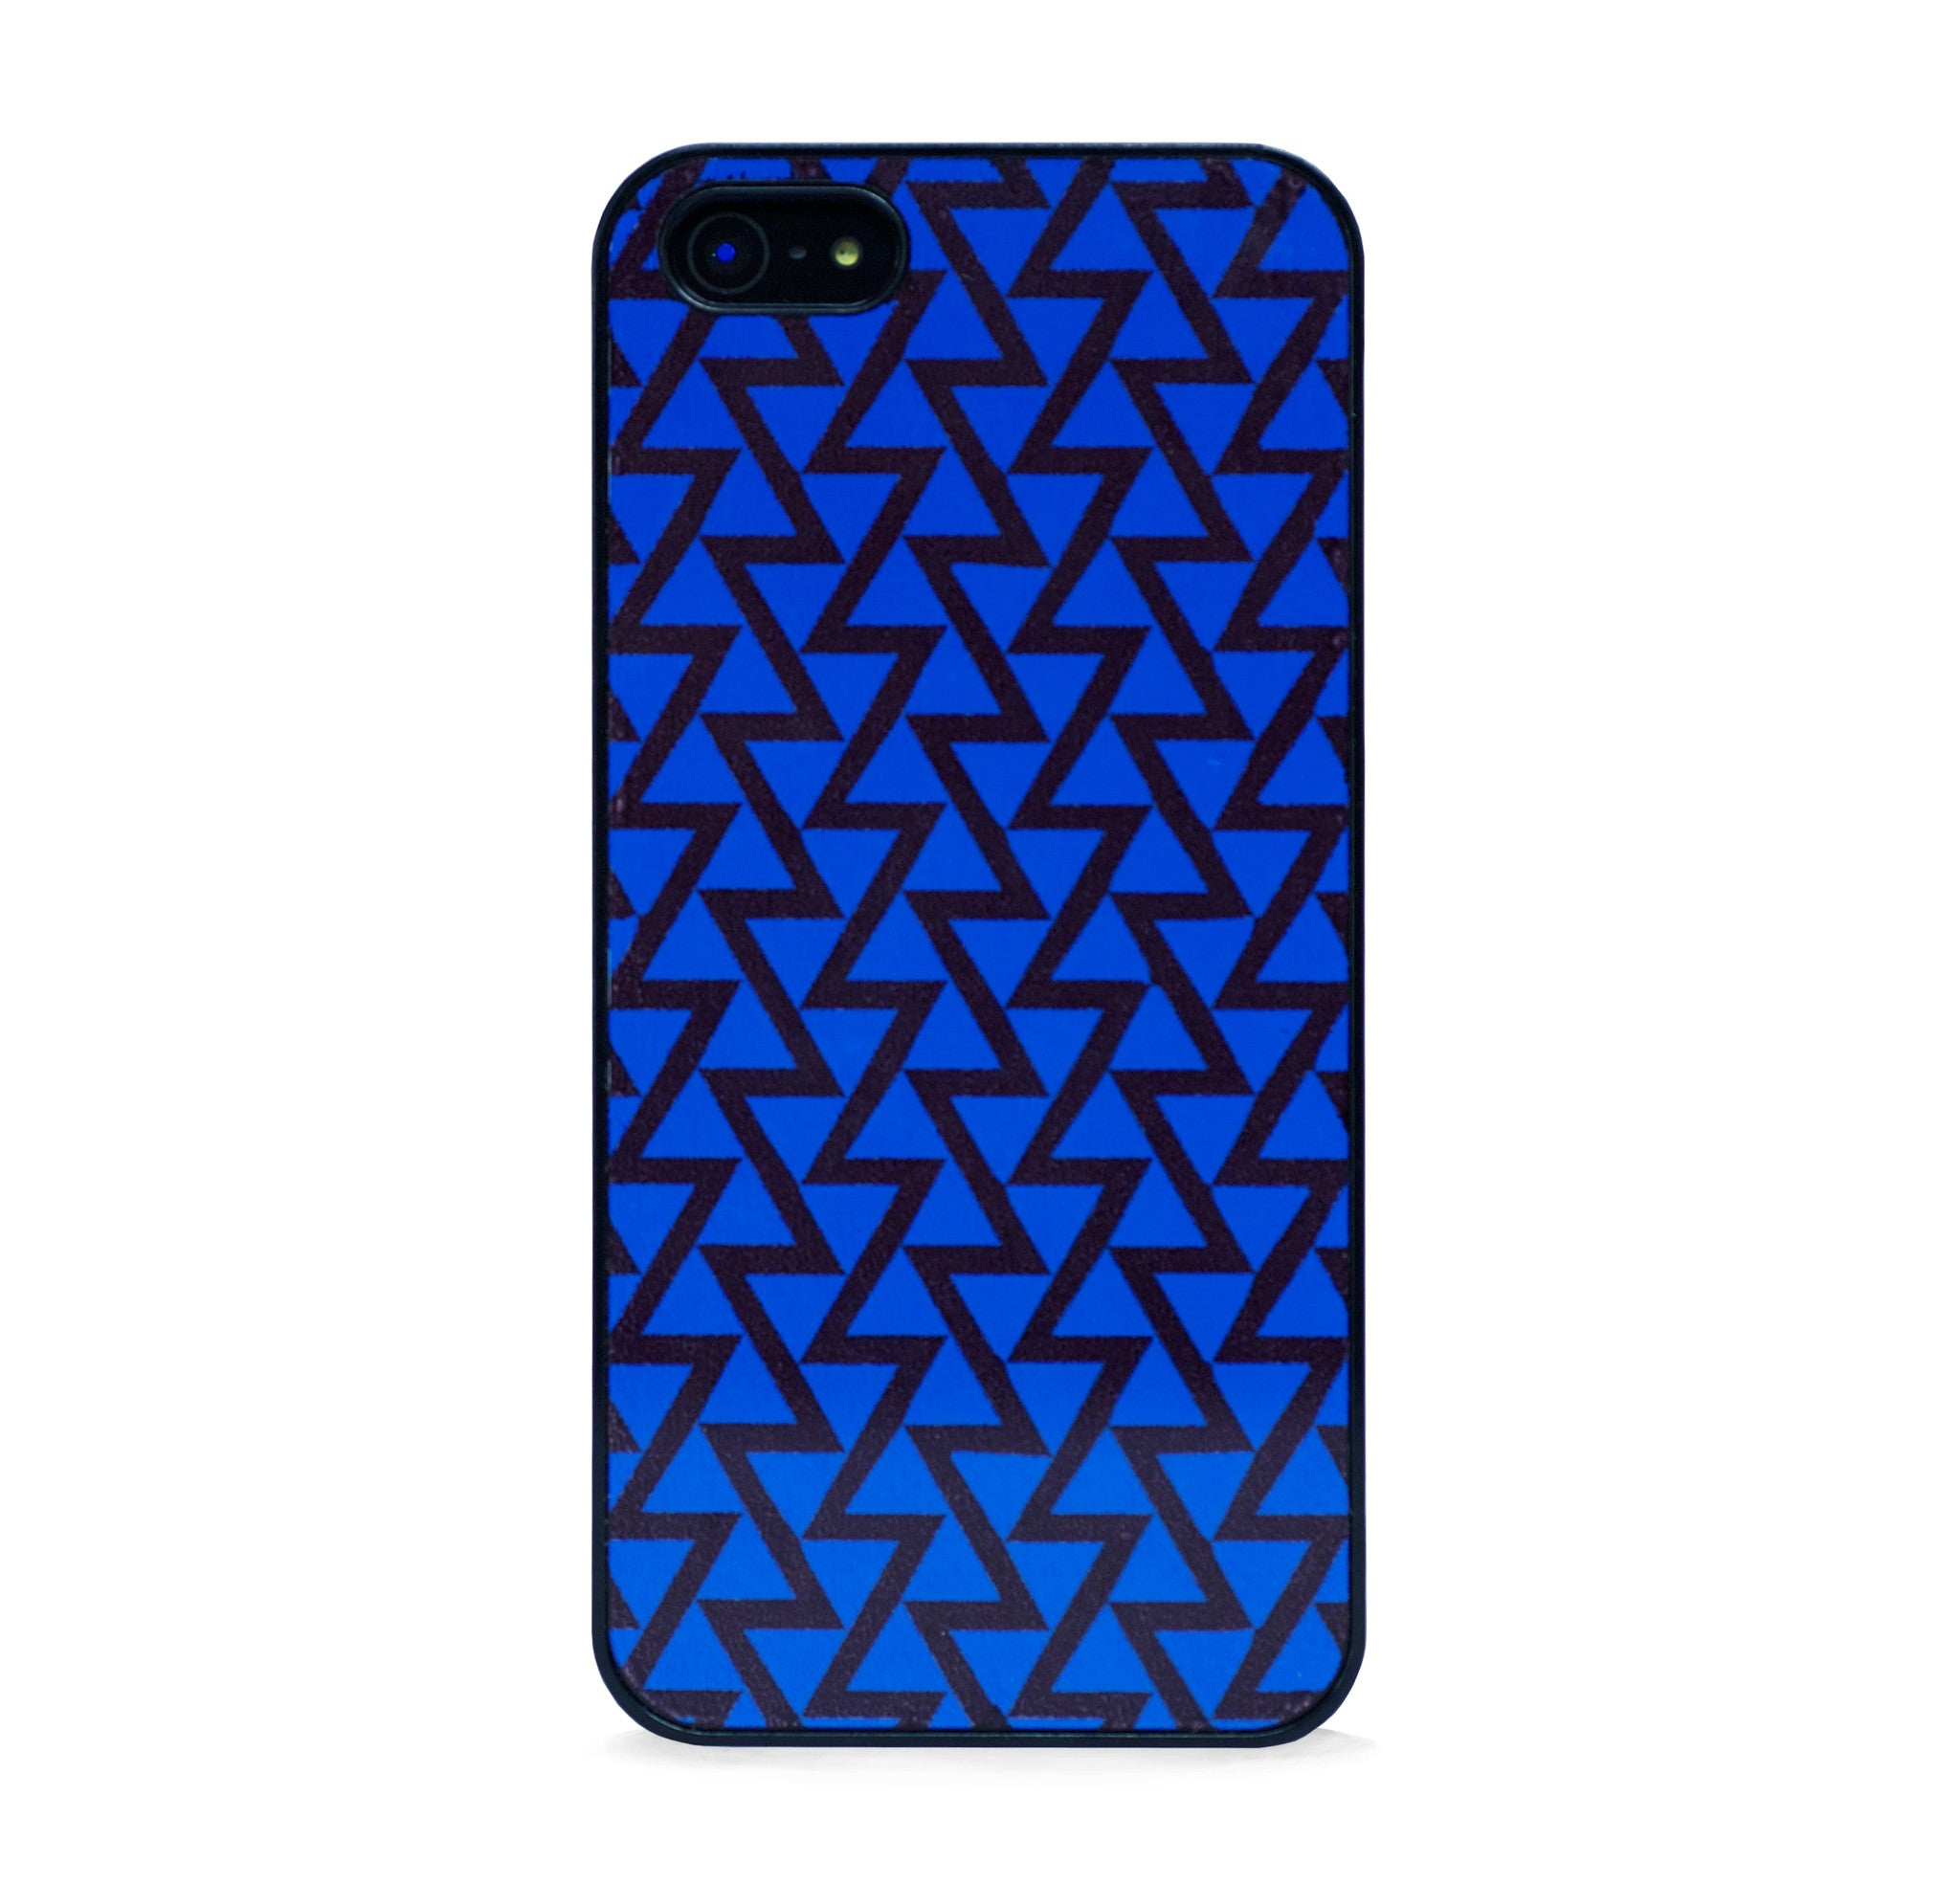 GEO TRIANGLE BLUE FOR IPHONE 5/5S